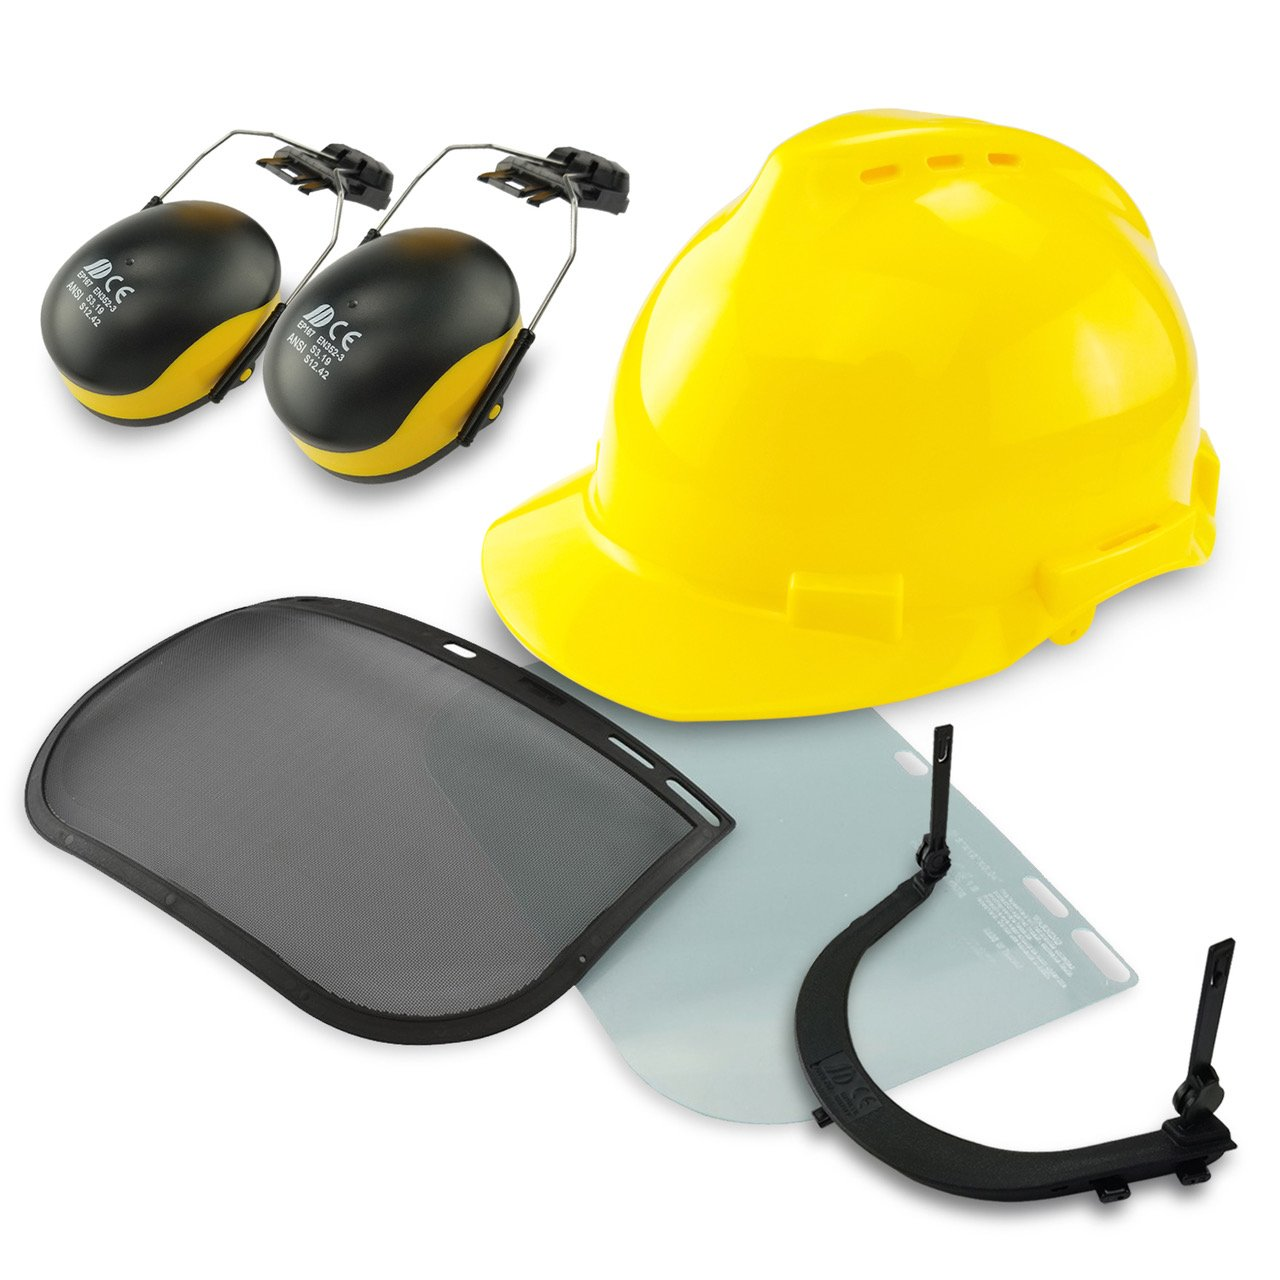 Neiko 53880A 4-in-1 Safety Helmet with Hearing and Face Protection, Heavy Duty Hard Hat | Removable Ear Muffs and Visors by Neiko (Image #8)